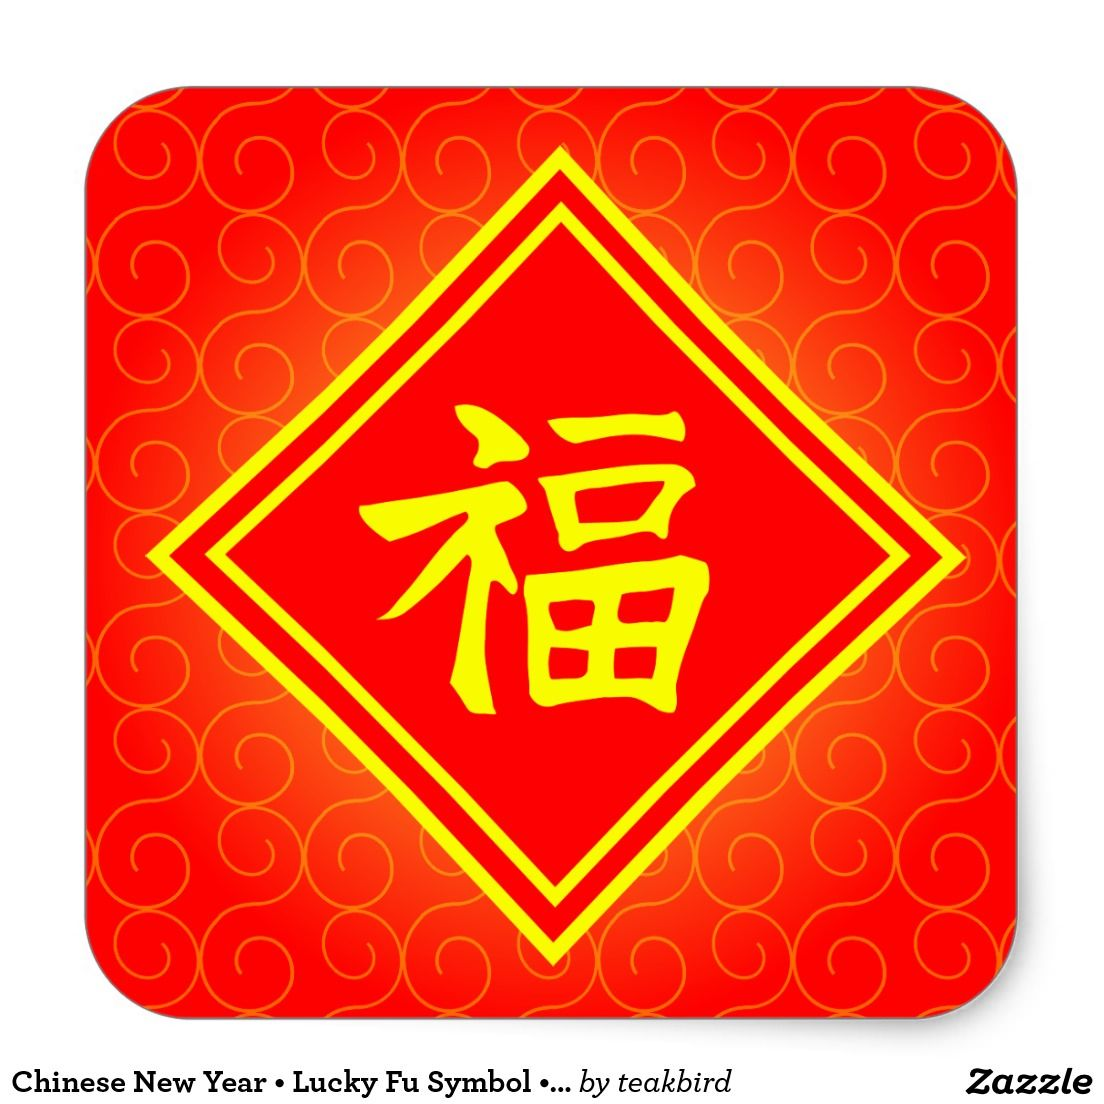 Chinese new year lucky fu symbol red and gold classic round chinese new year lucky fu symbol red and gold classic round sticker buycottarizona Gallery